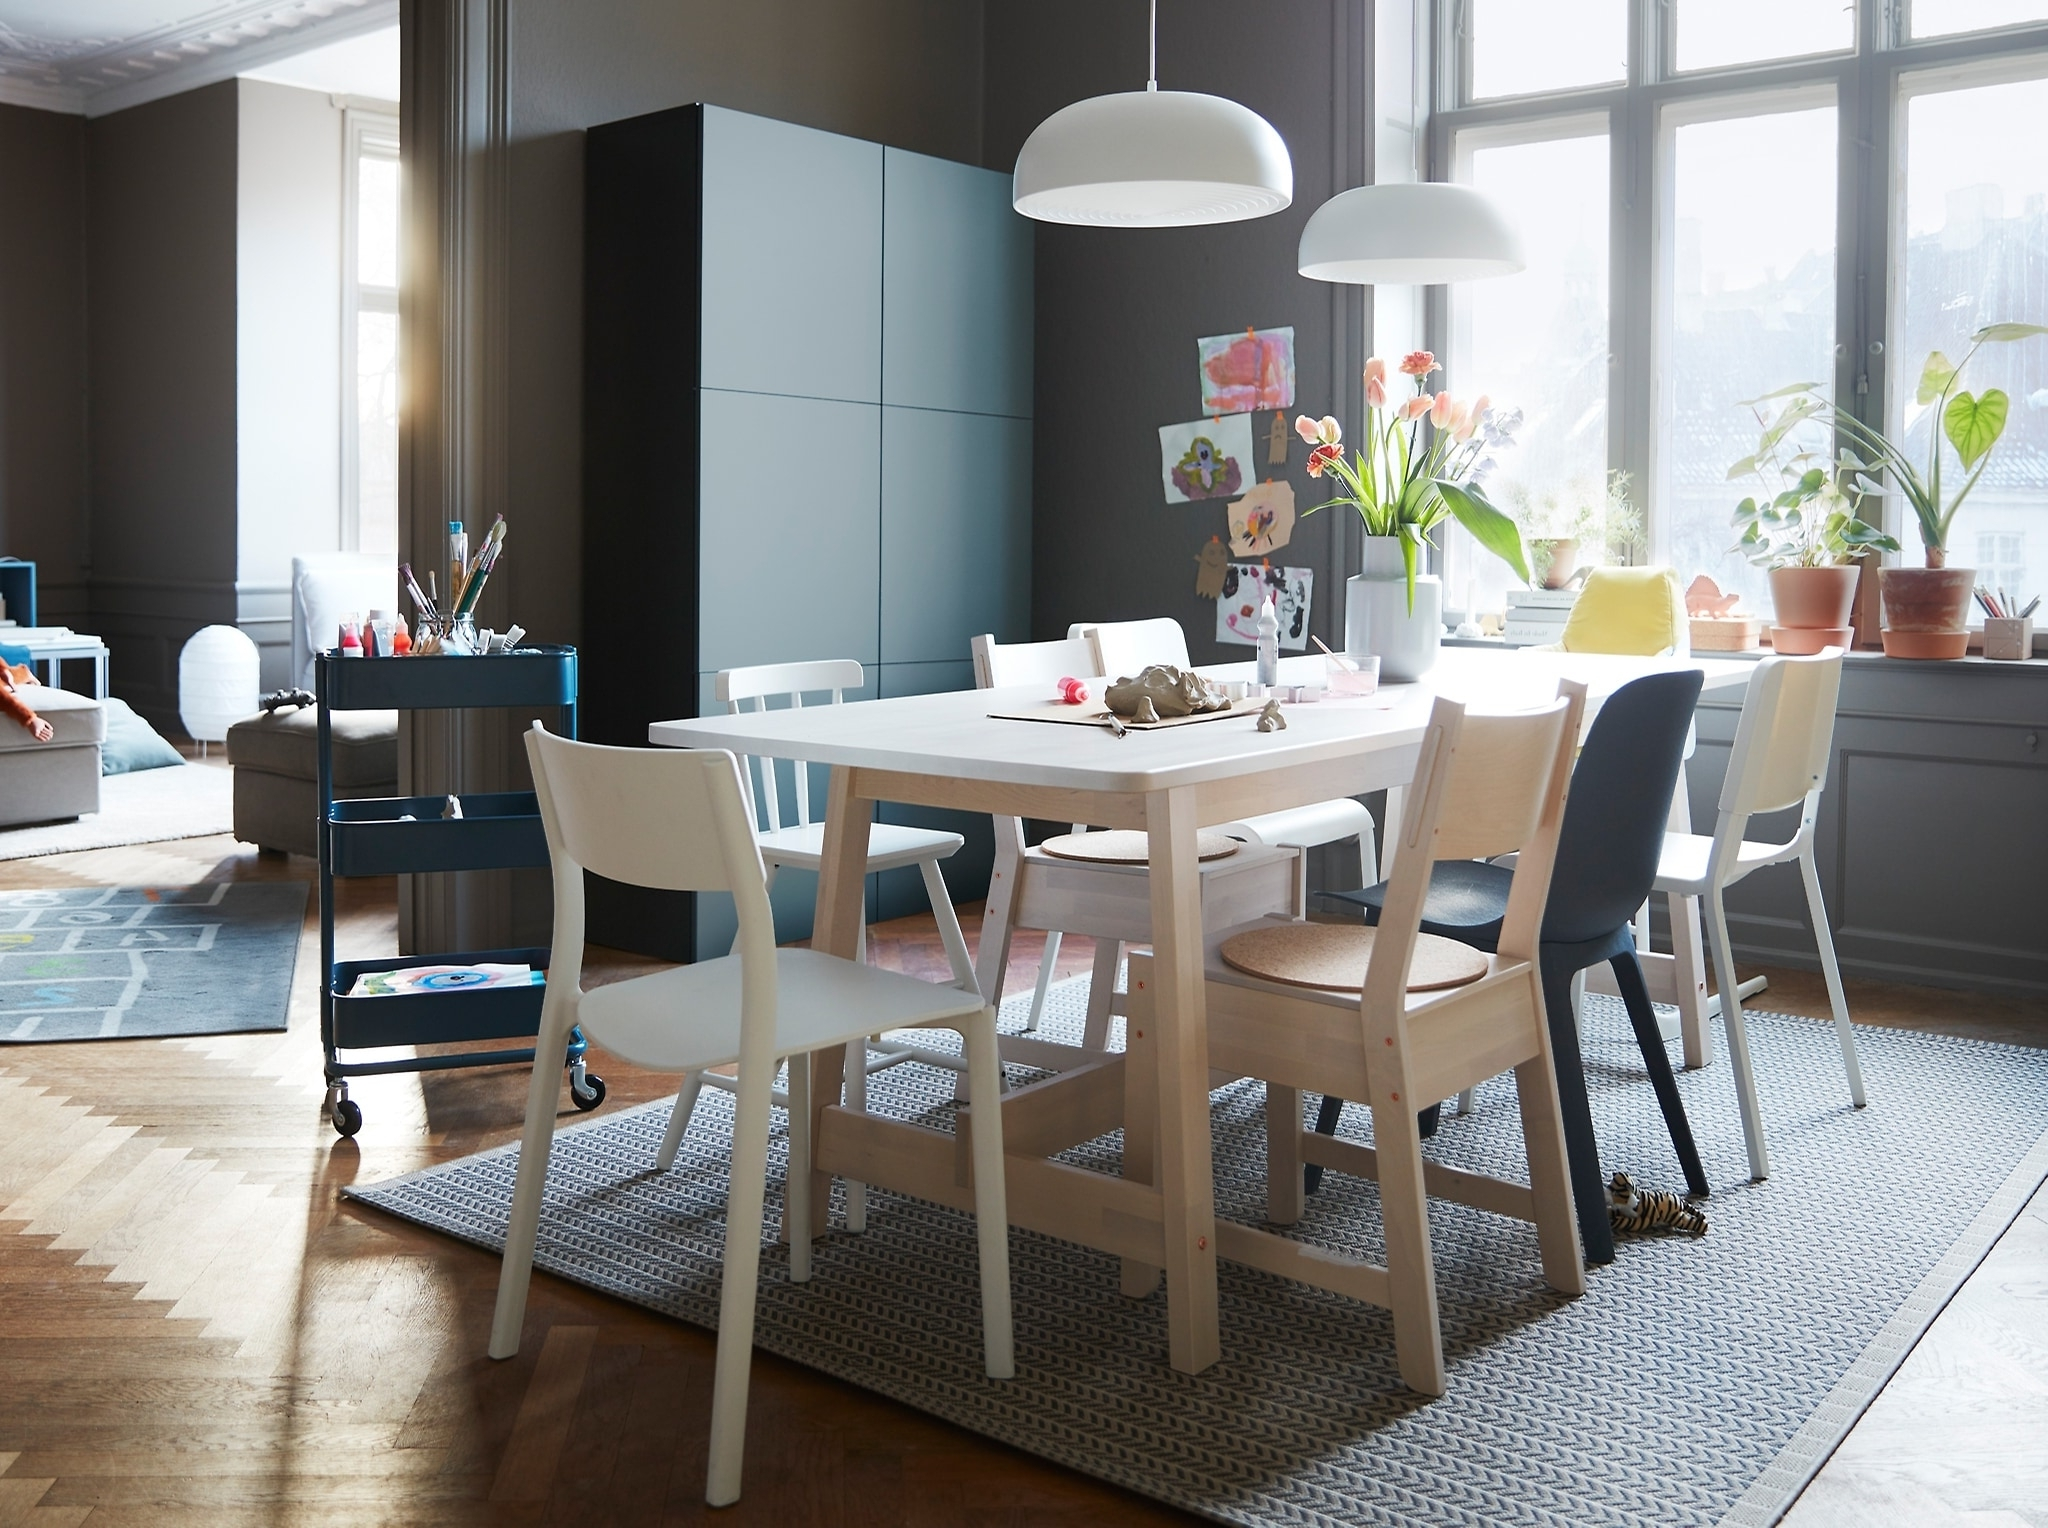 Ikea Pertaining To Most Recently Released Dining Room Tables And Chairs (View 21 of 25)